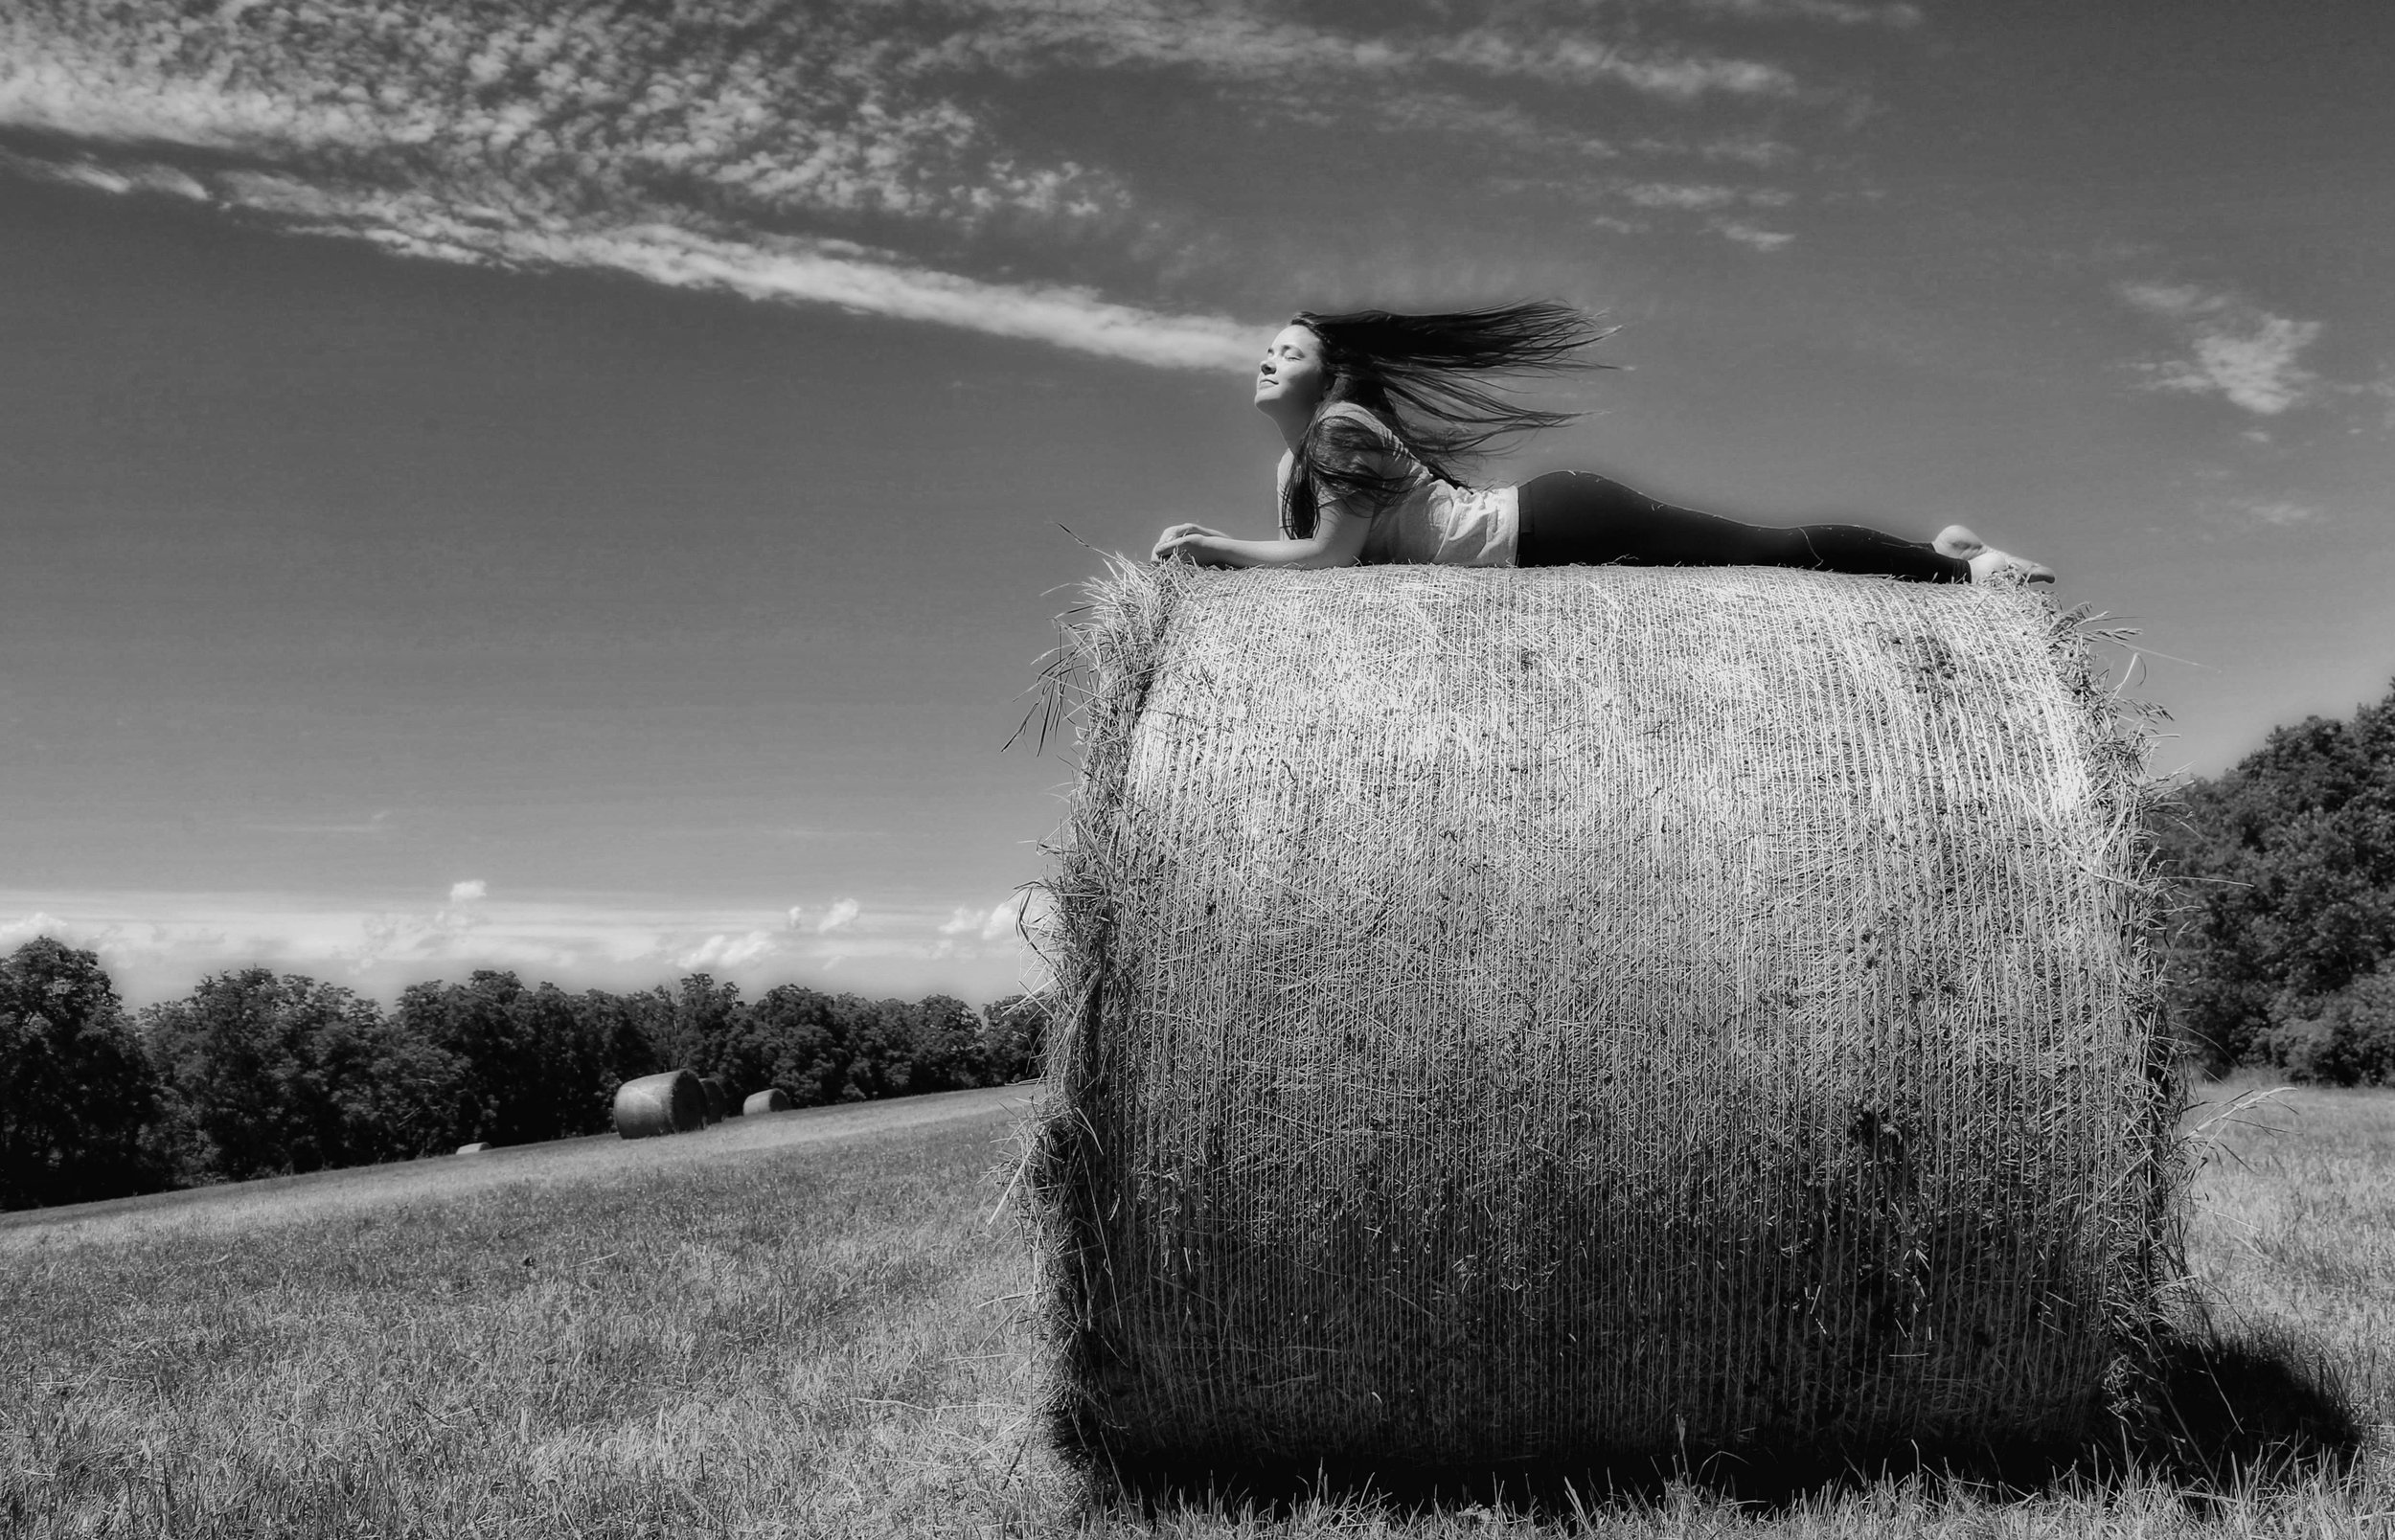 Katie on the Round Bale